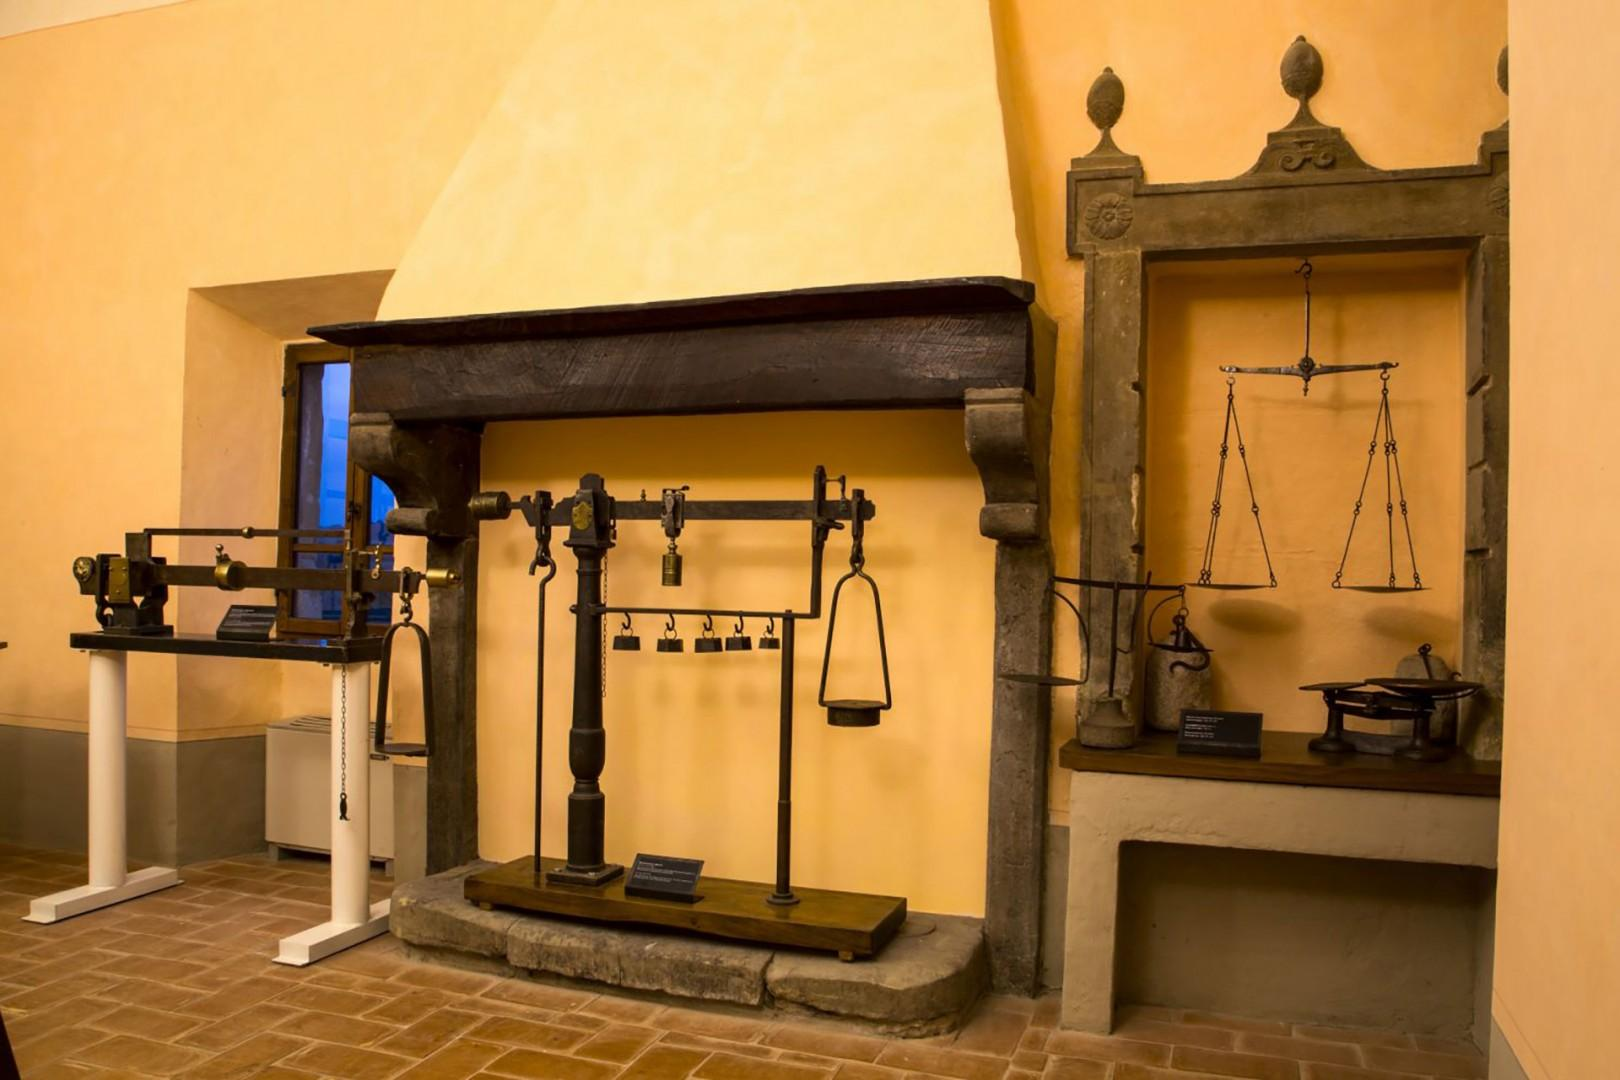 The Museum of Scales interactively shows 600 years of history of weighing machines. Good for kids